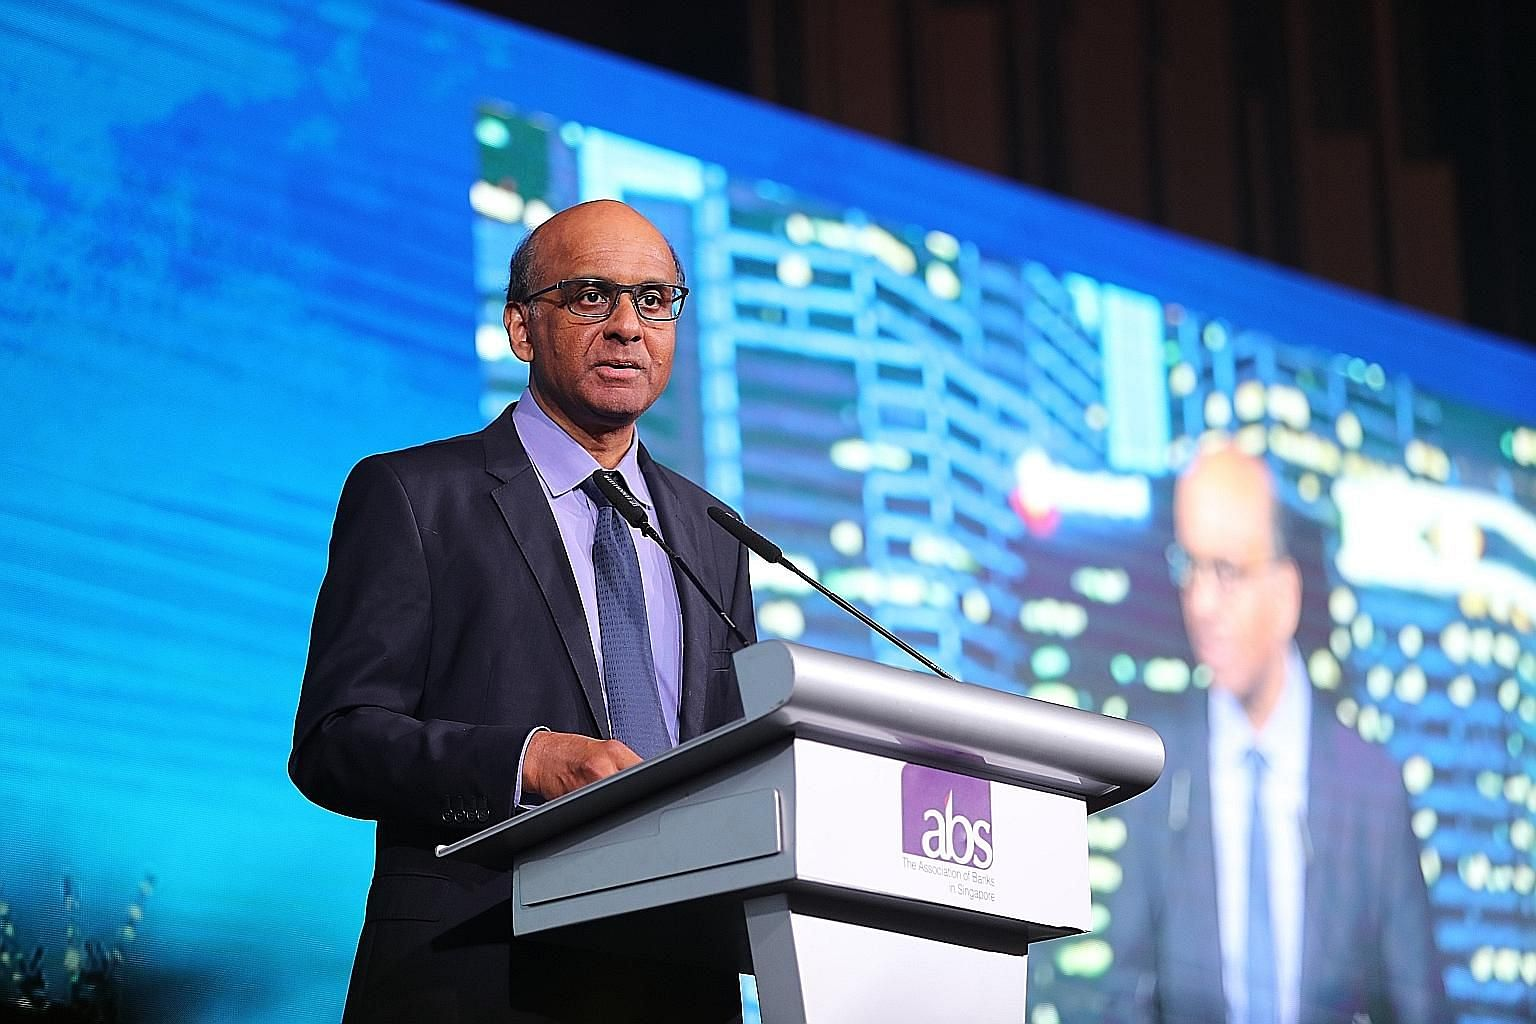 Senior Minister Tharman Shanmugaratnam, who is also chairman of the Monetary Authority of Singapore, speaking at the annual dinner of the Association of Banks in Singapore last night.